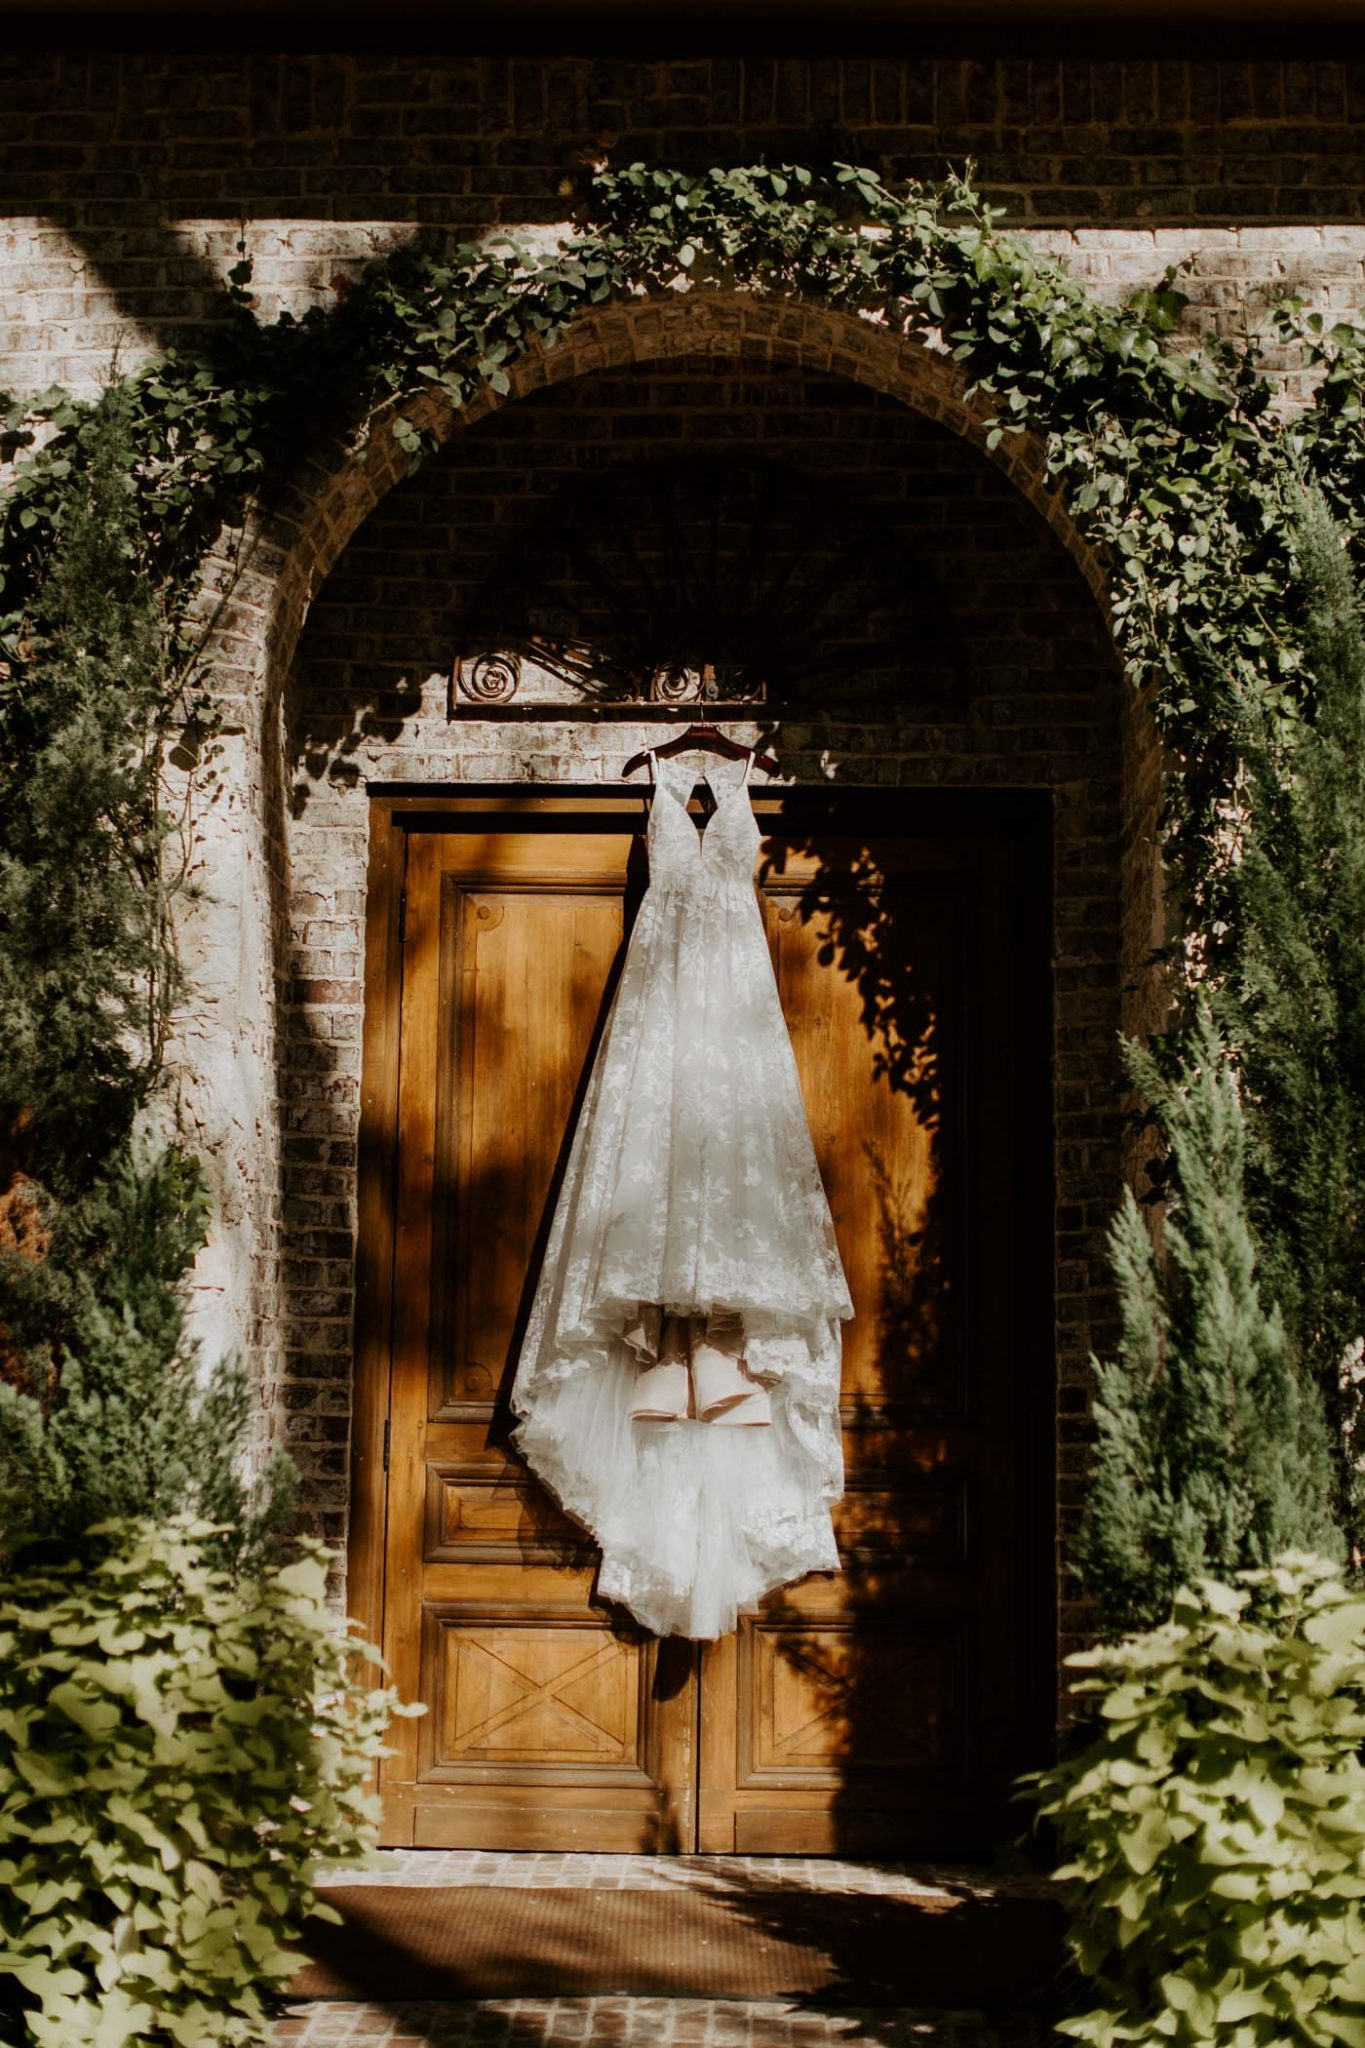 Wedding dress hanging up on a vine covered door